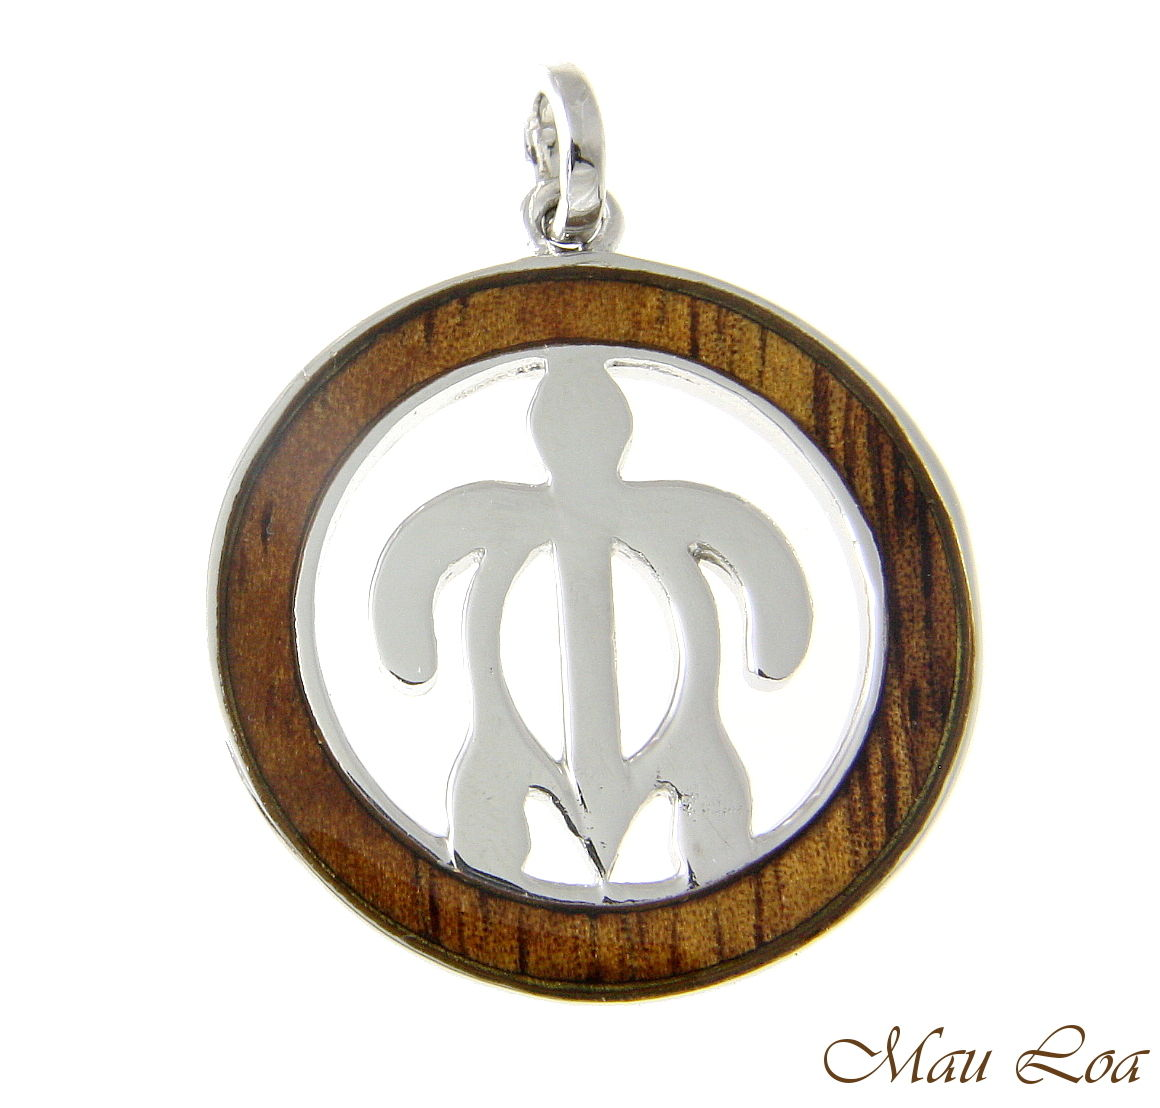 Koa Wood Hawaiian Circle Round Honu Sea Turlte Rhodium Brass Pendant Charm